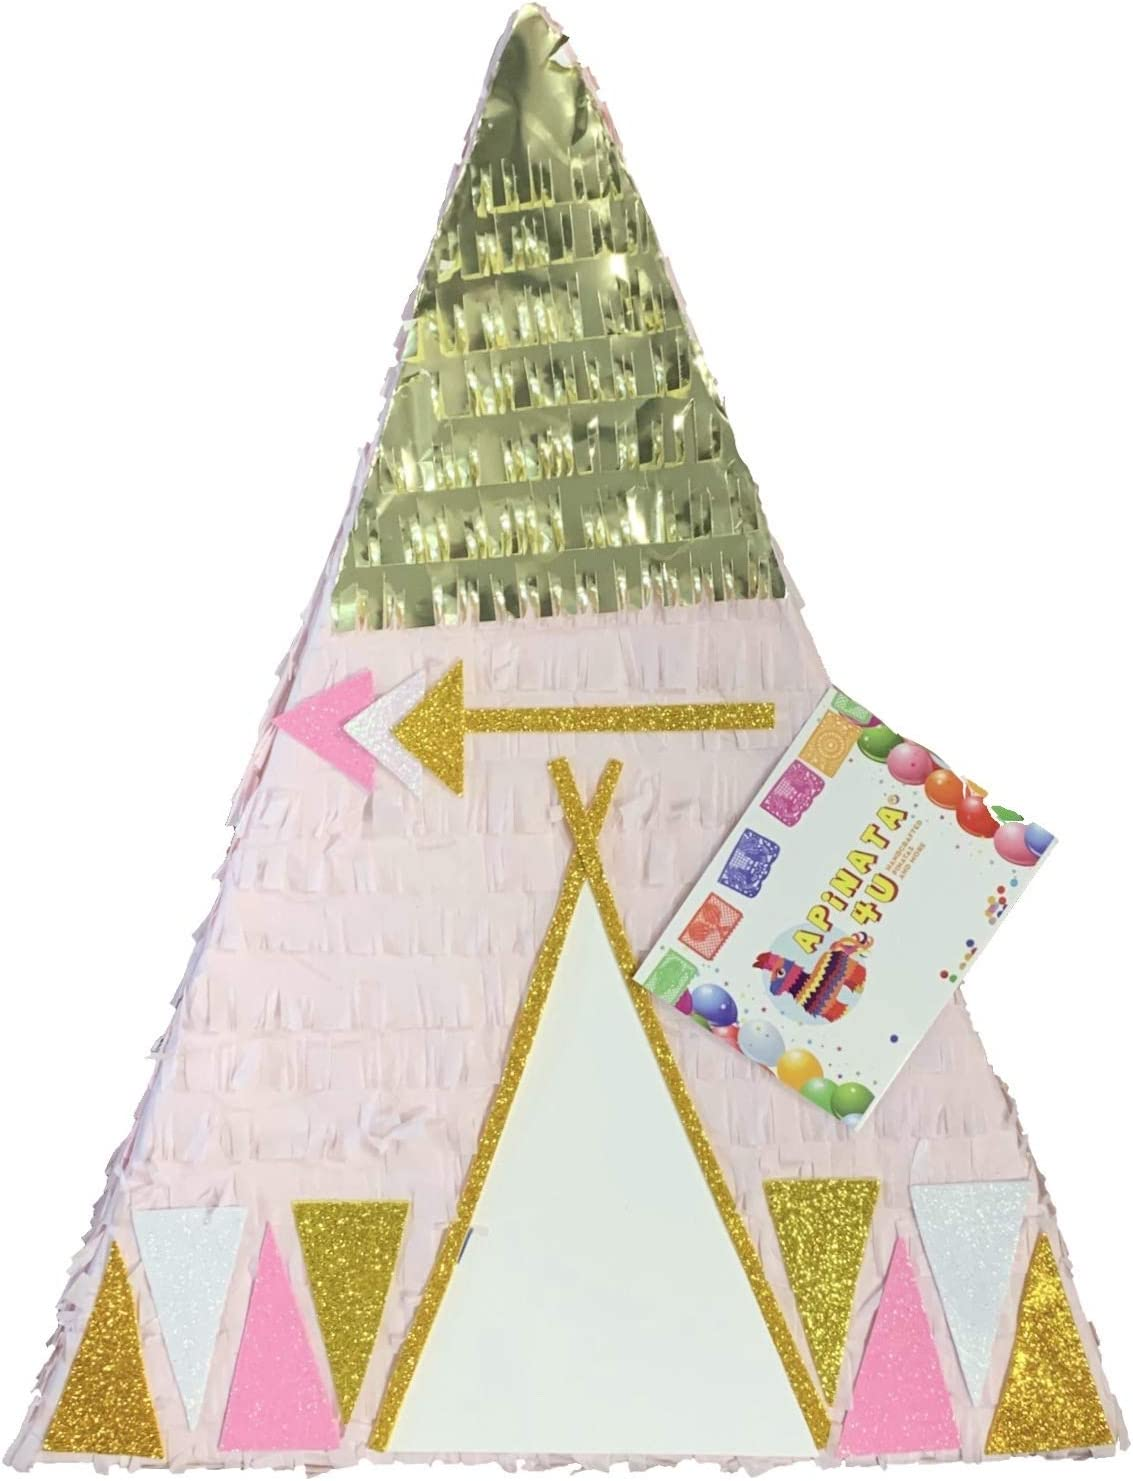 APINATA4U Large Tribal Themed Teepee Pinata 贈与 Gold A Pink with 爆買いセール and